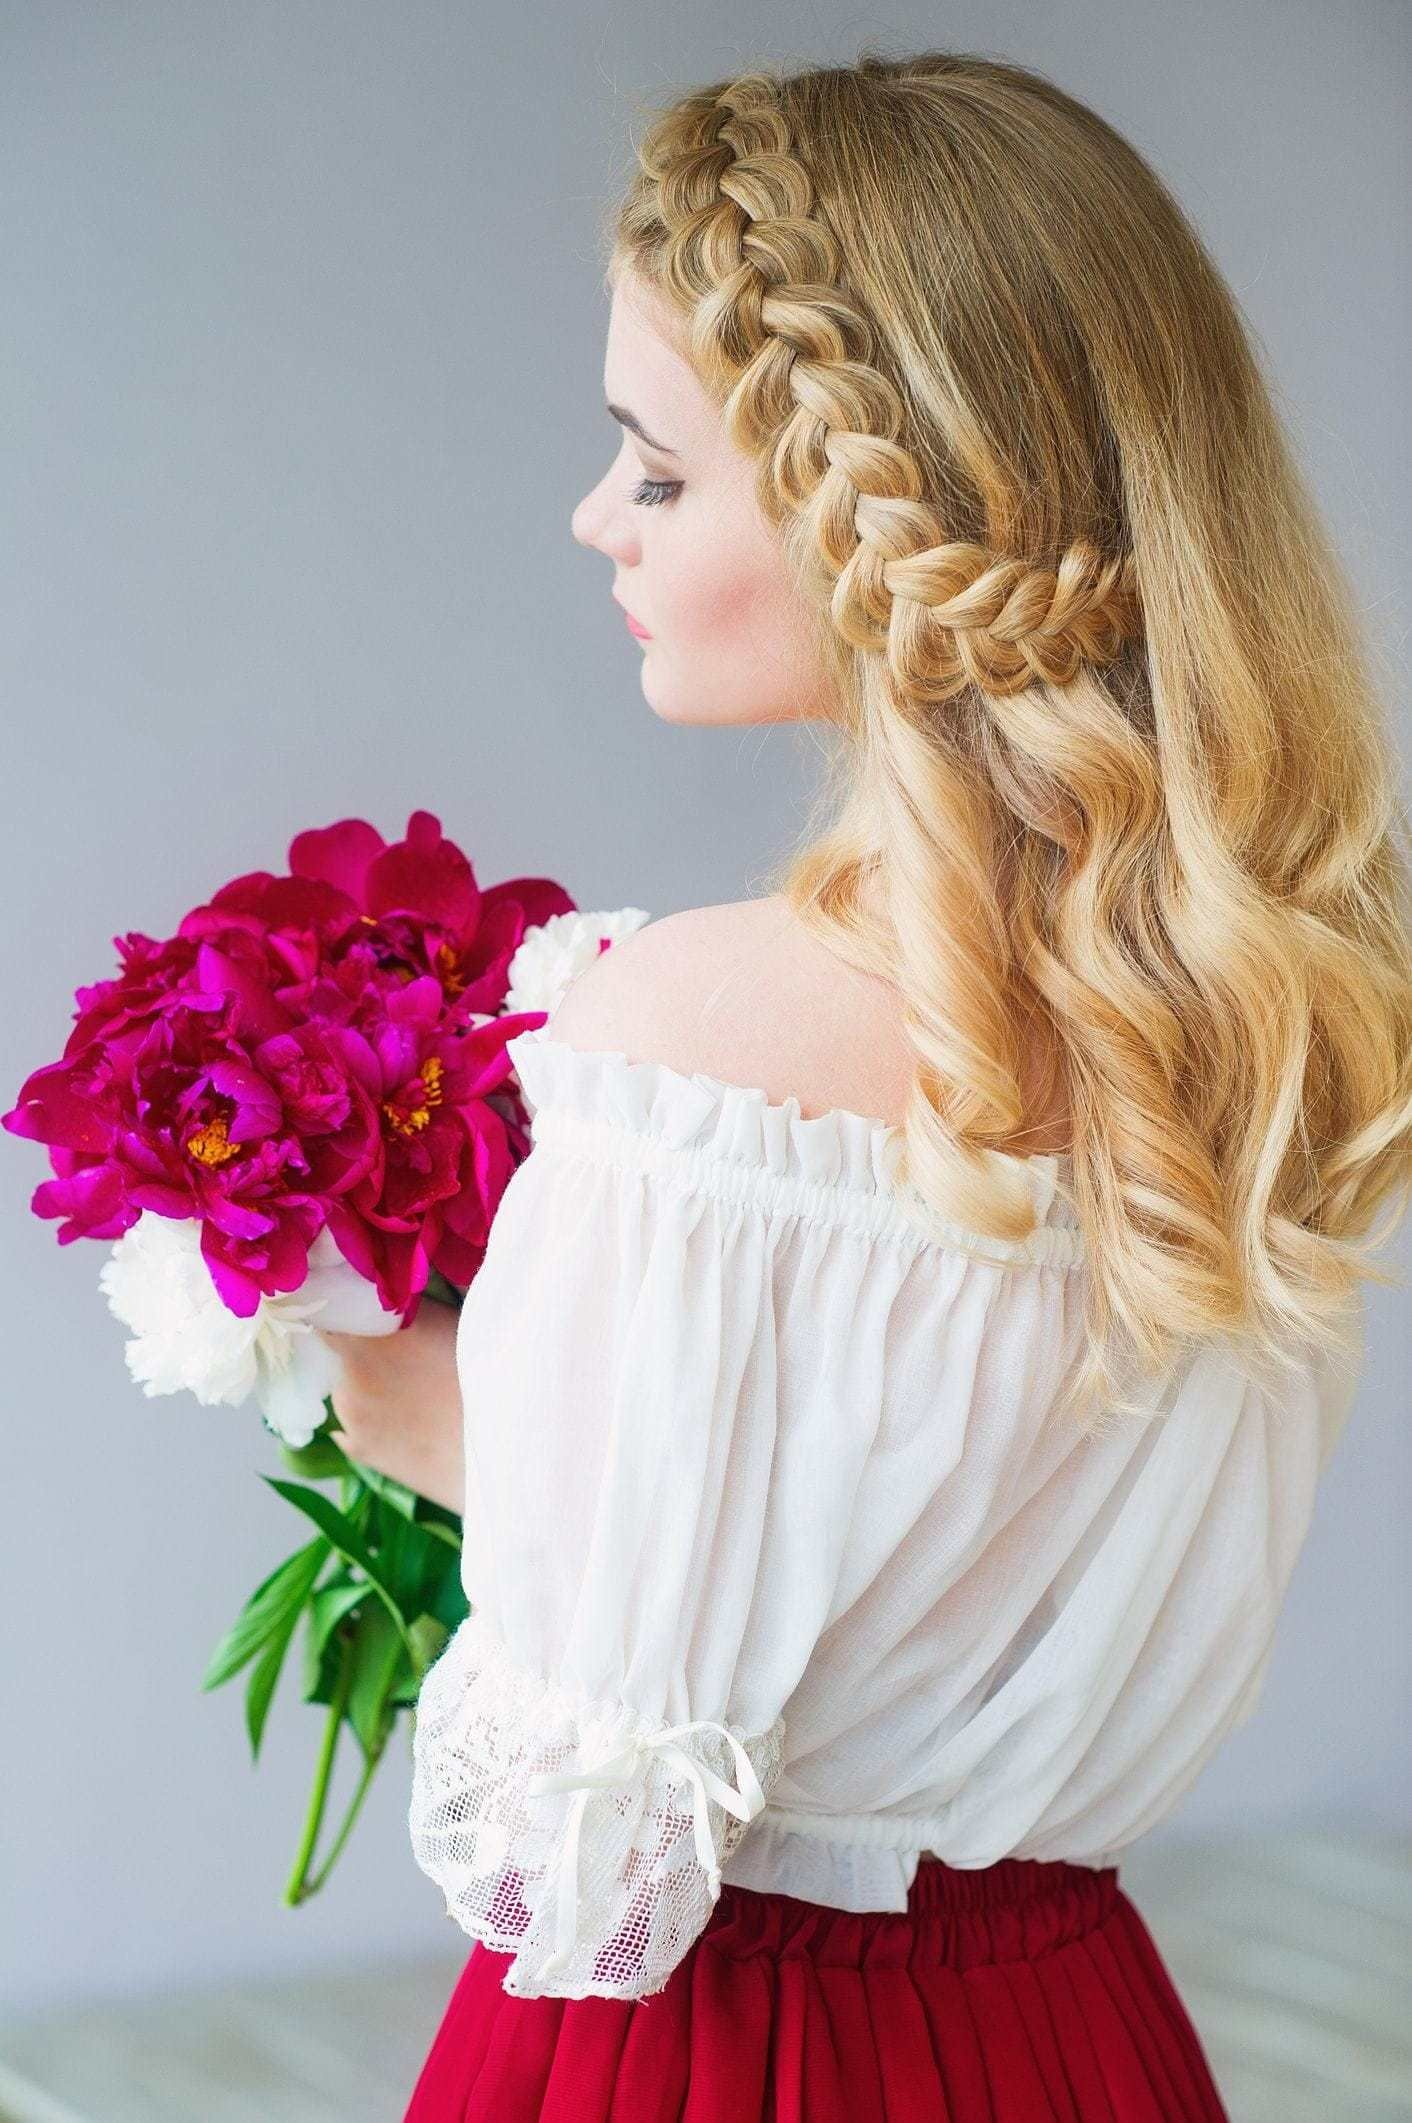 The Best Flower Girl Hairstyles That Flatter Girls Of All Ages Pictures